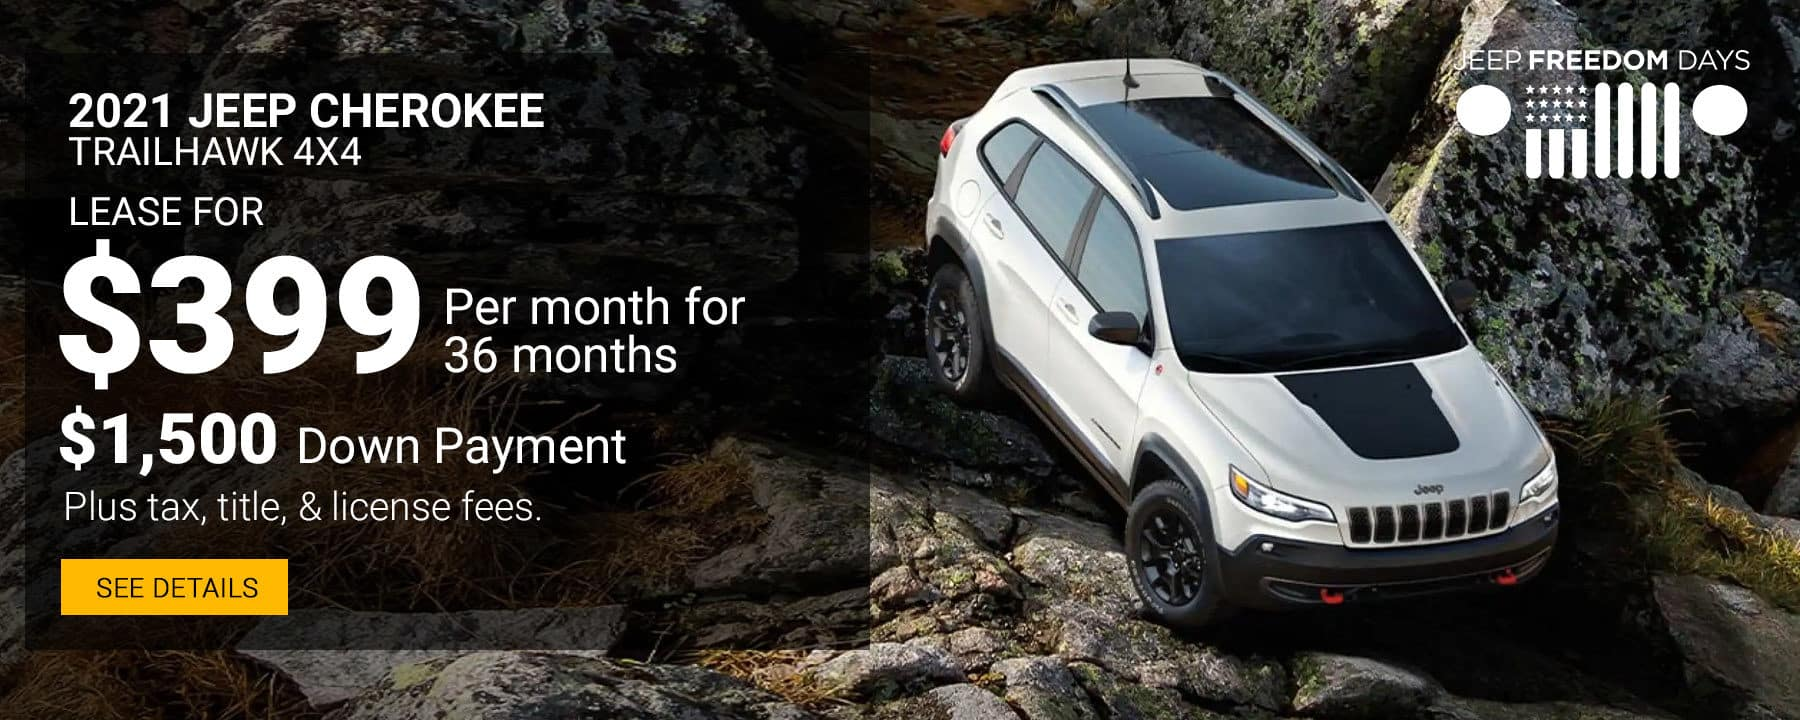 During the Jeep Freedom Days Event, Lease a new 2021 Jeep Cherokee Trailhawk 4X4 for $399 per month with $1,500 down.